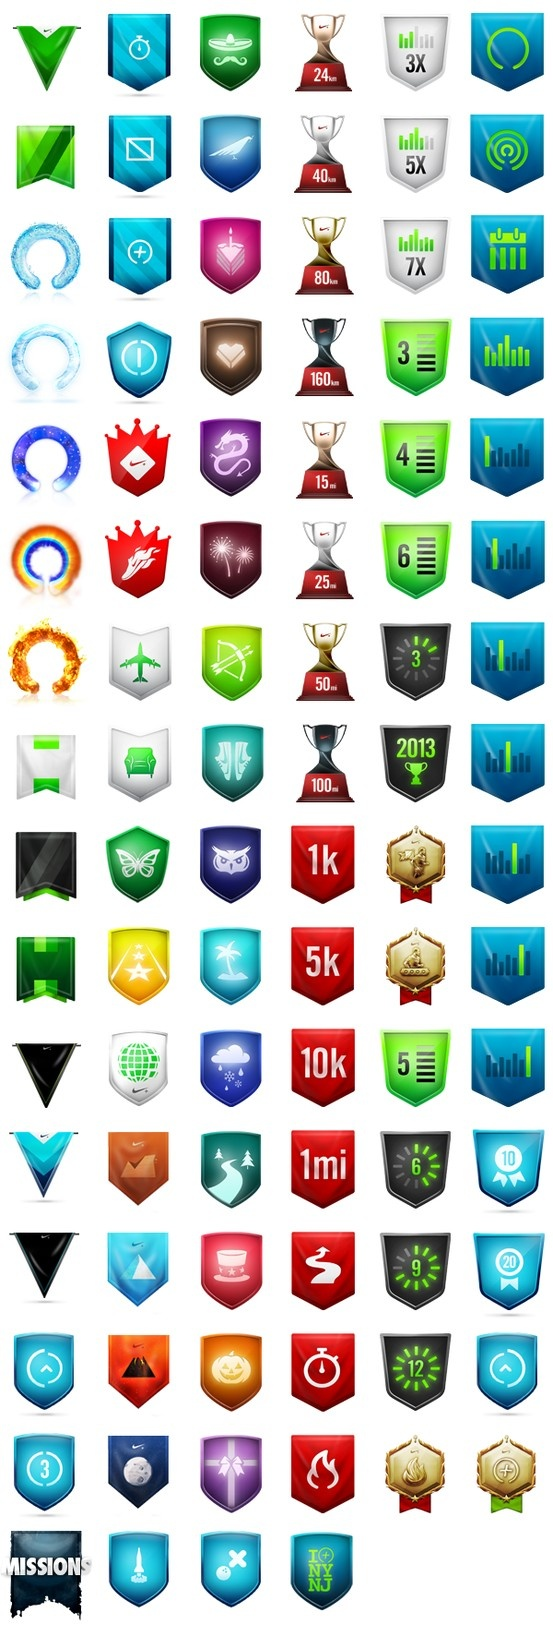 17 Best images about Badge/Level System on Pinterest | Technology ...